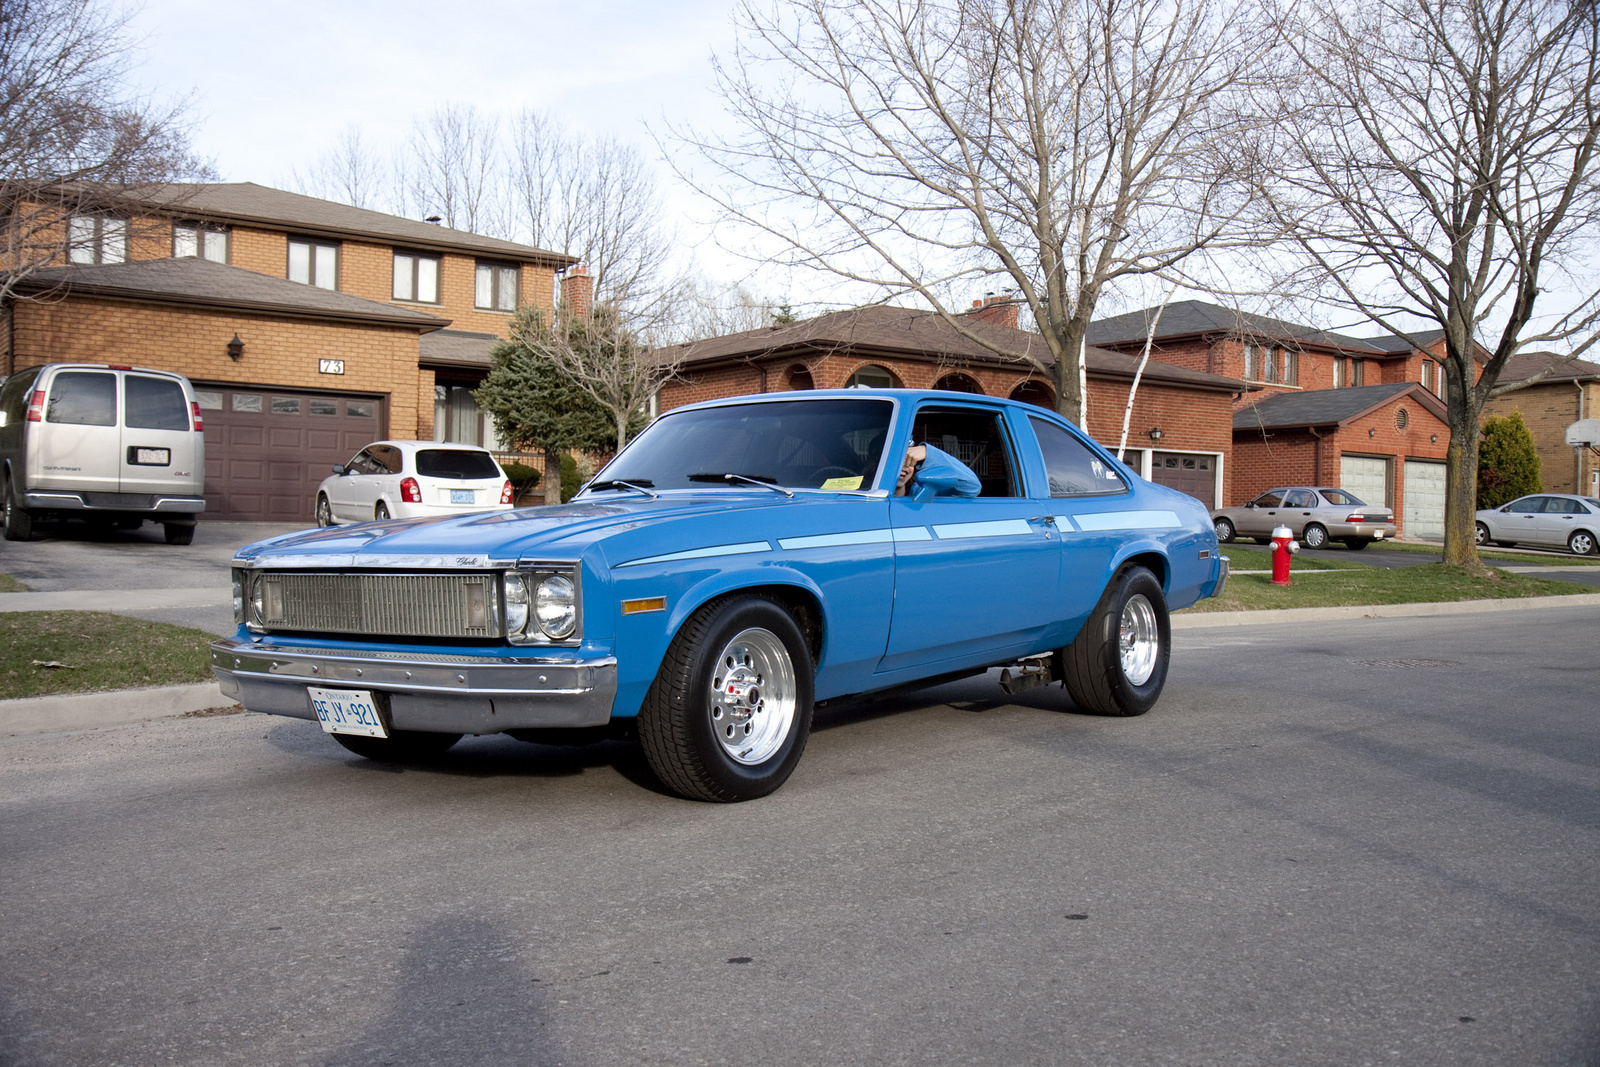 1974 Chevrolet Nova on rotisserie for automobiles